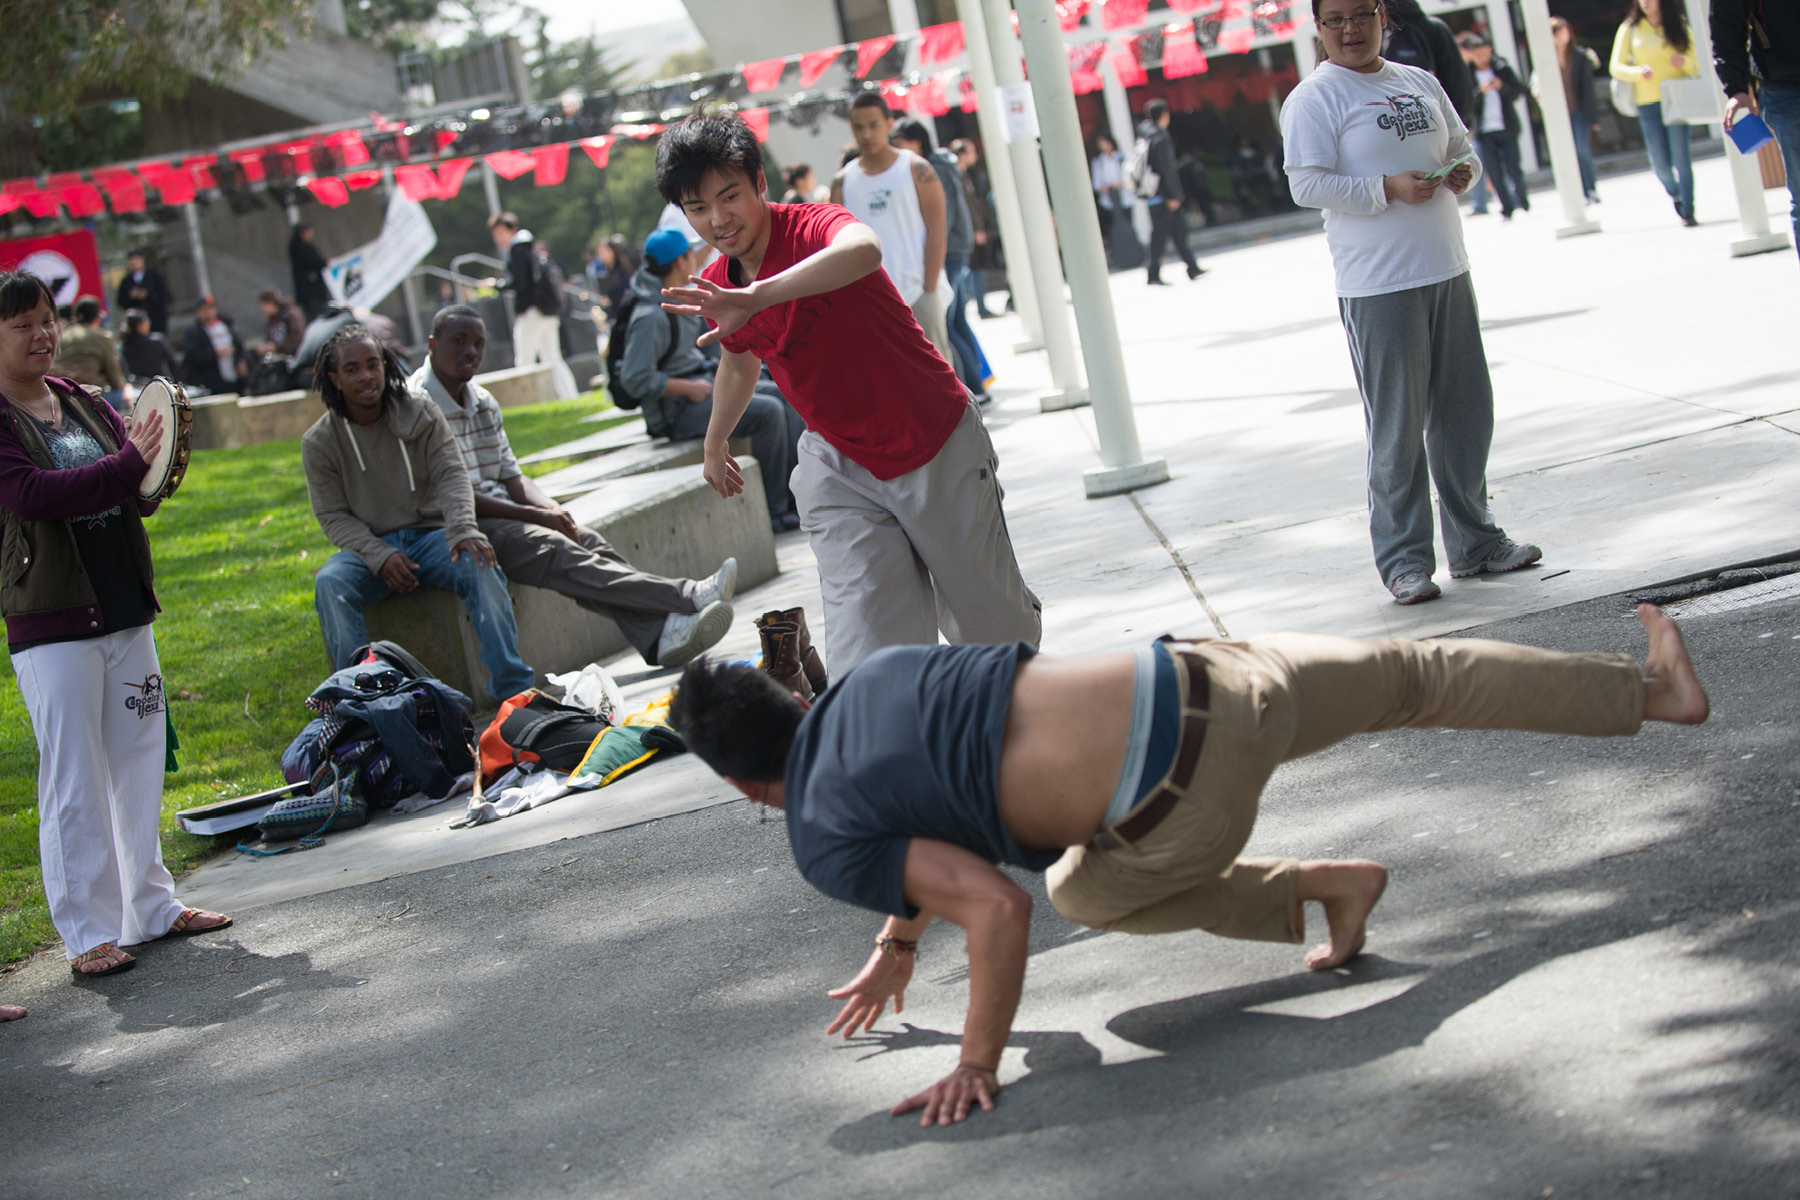 Two male students break-dancing by the Quad